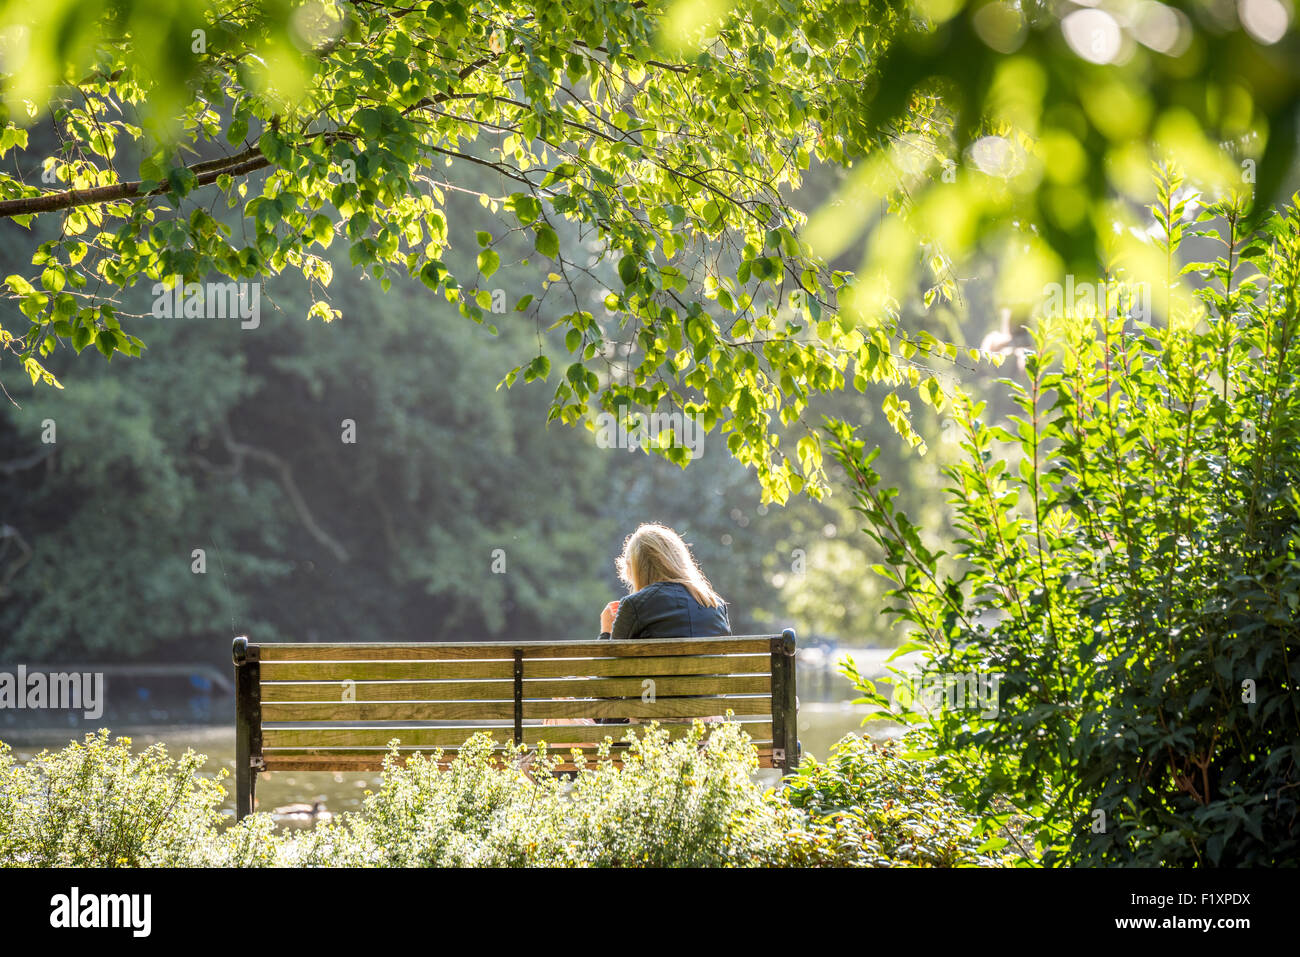 a-woman-sat-on-a-bench-backlit-by-the-su